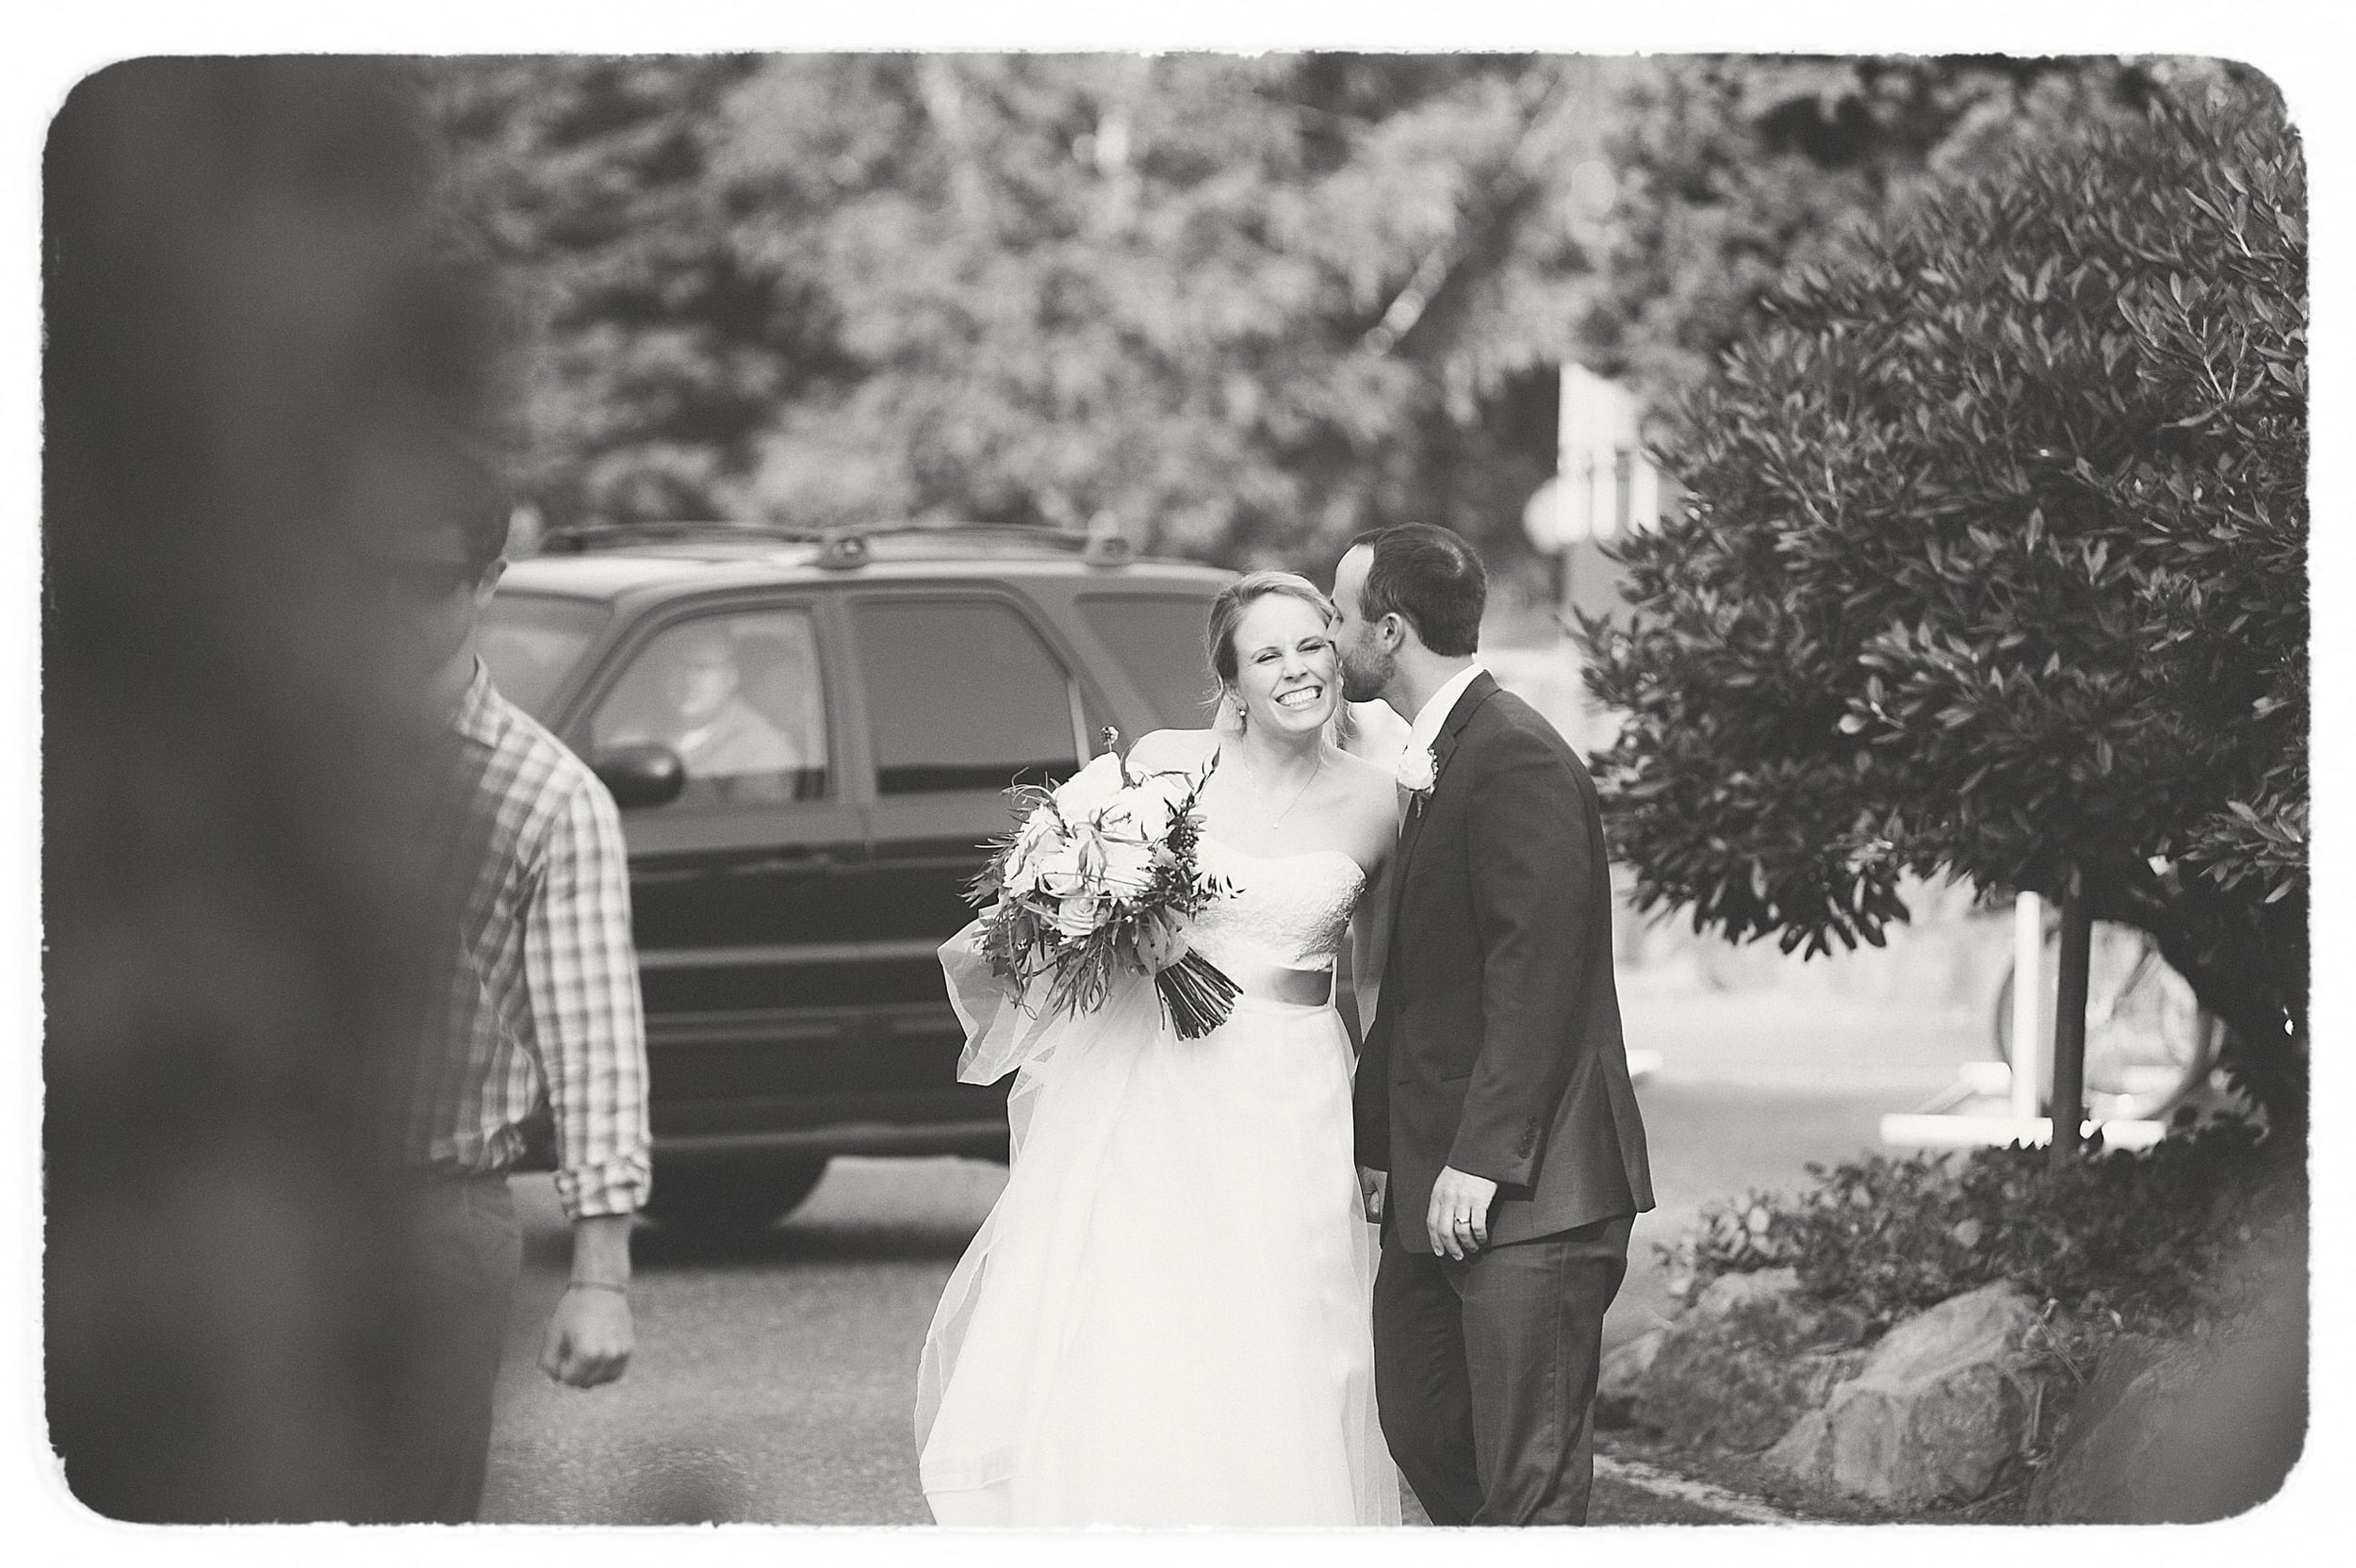 466 Kate&Marc-Wedding-B&WCollection-466Film.jpg